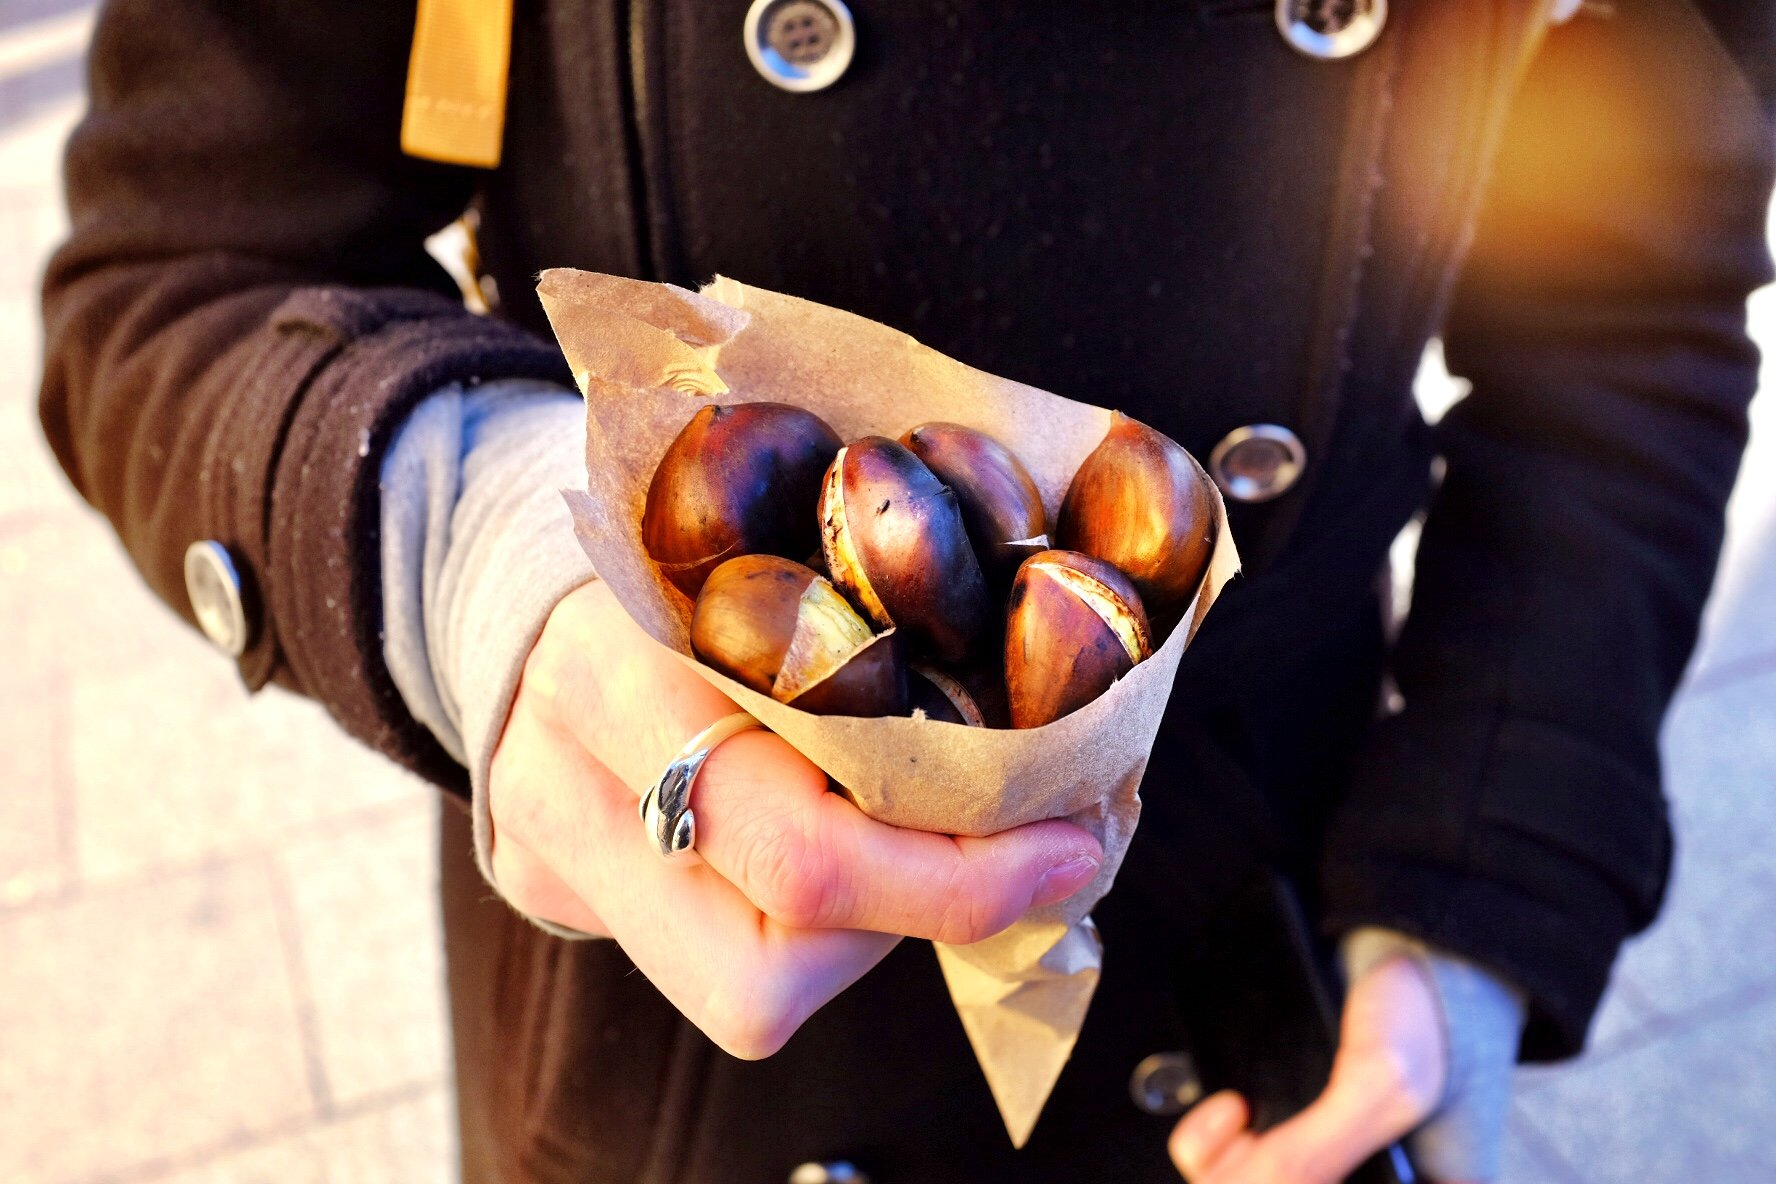 Sarah holding Chestnuts at the Christmas markets in Strasbourg